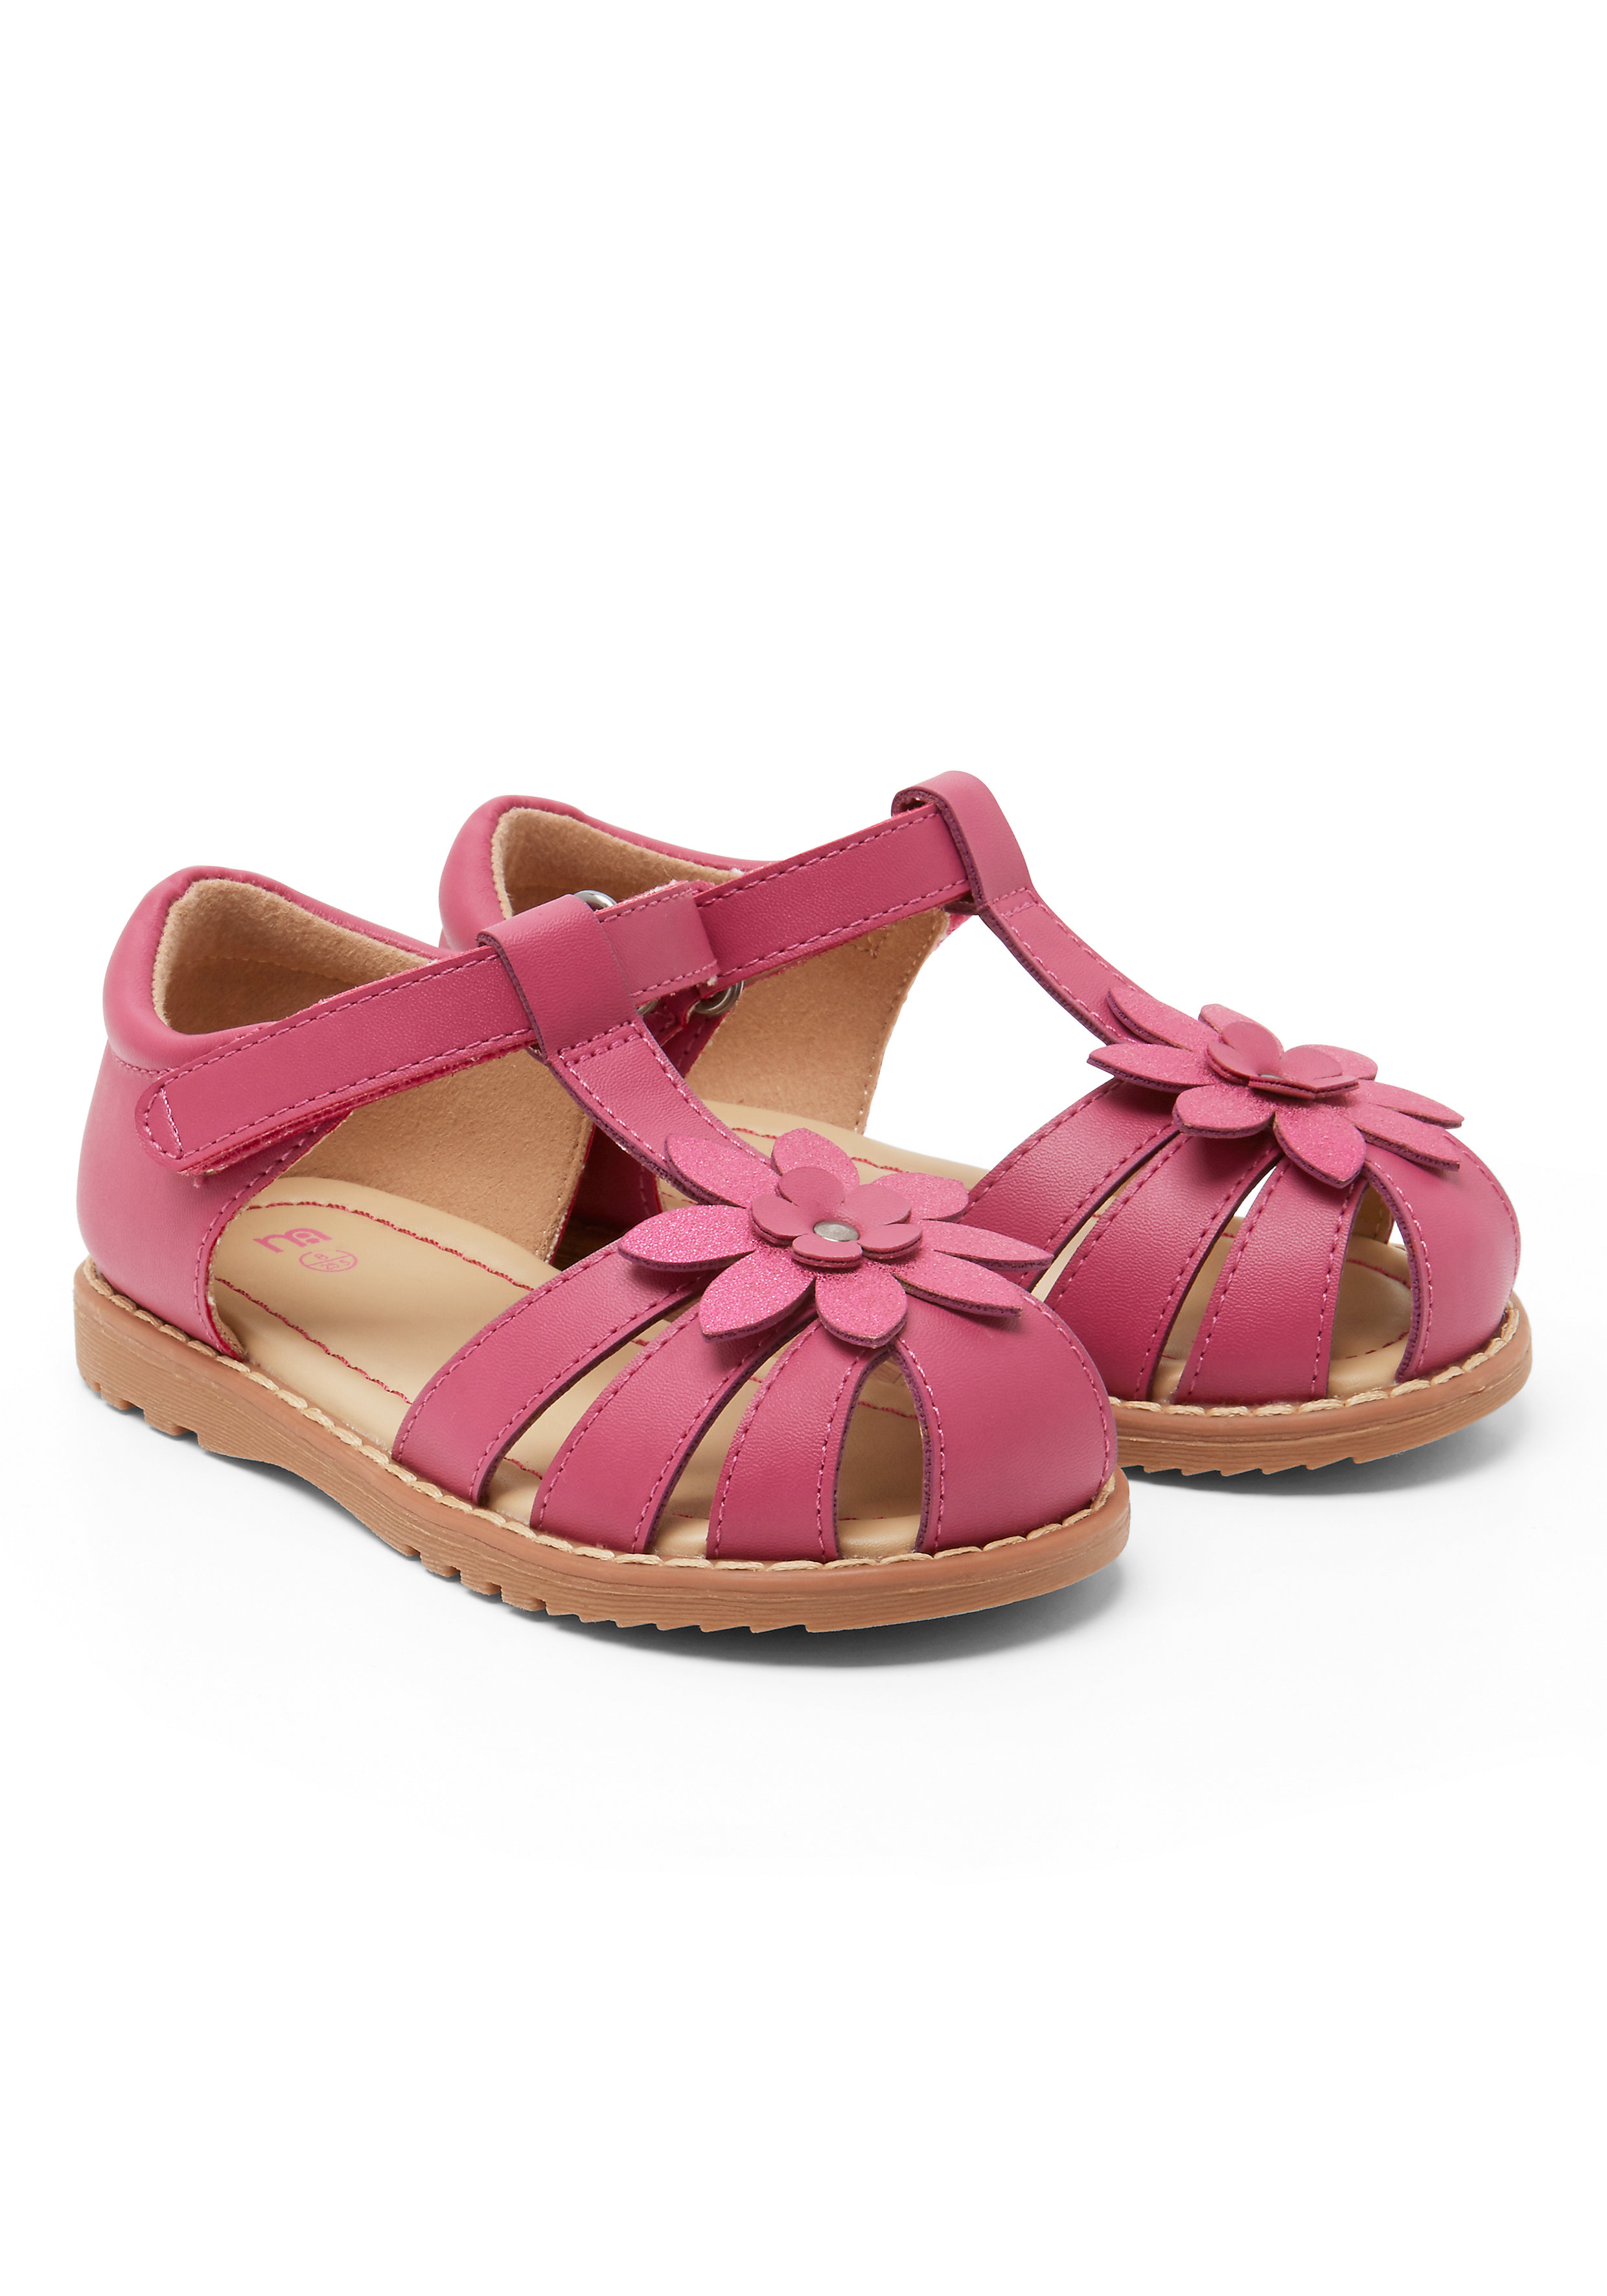 Mothercare   Girls Closed Toe Flower Sandals - Pink